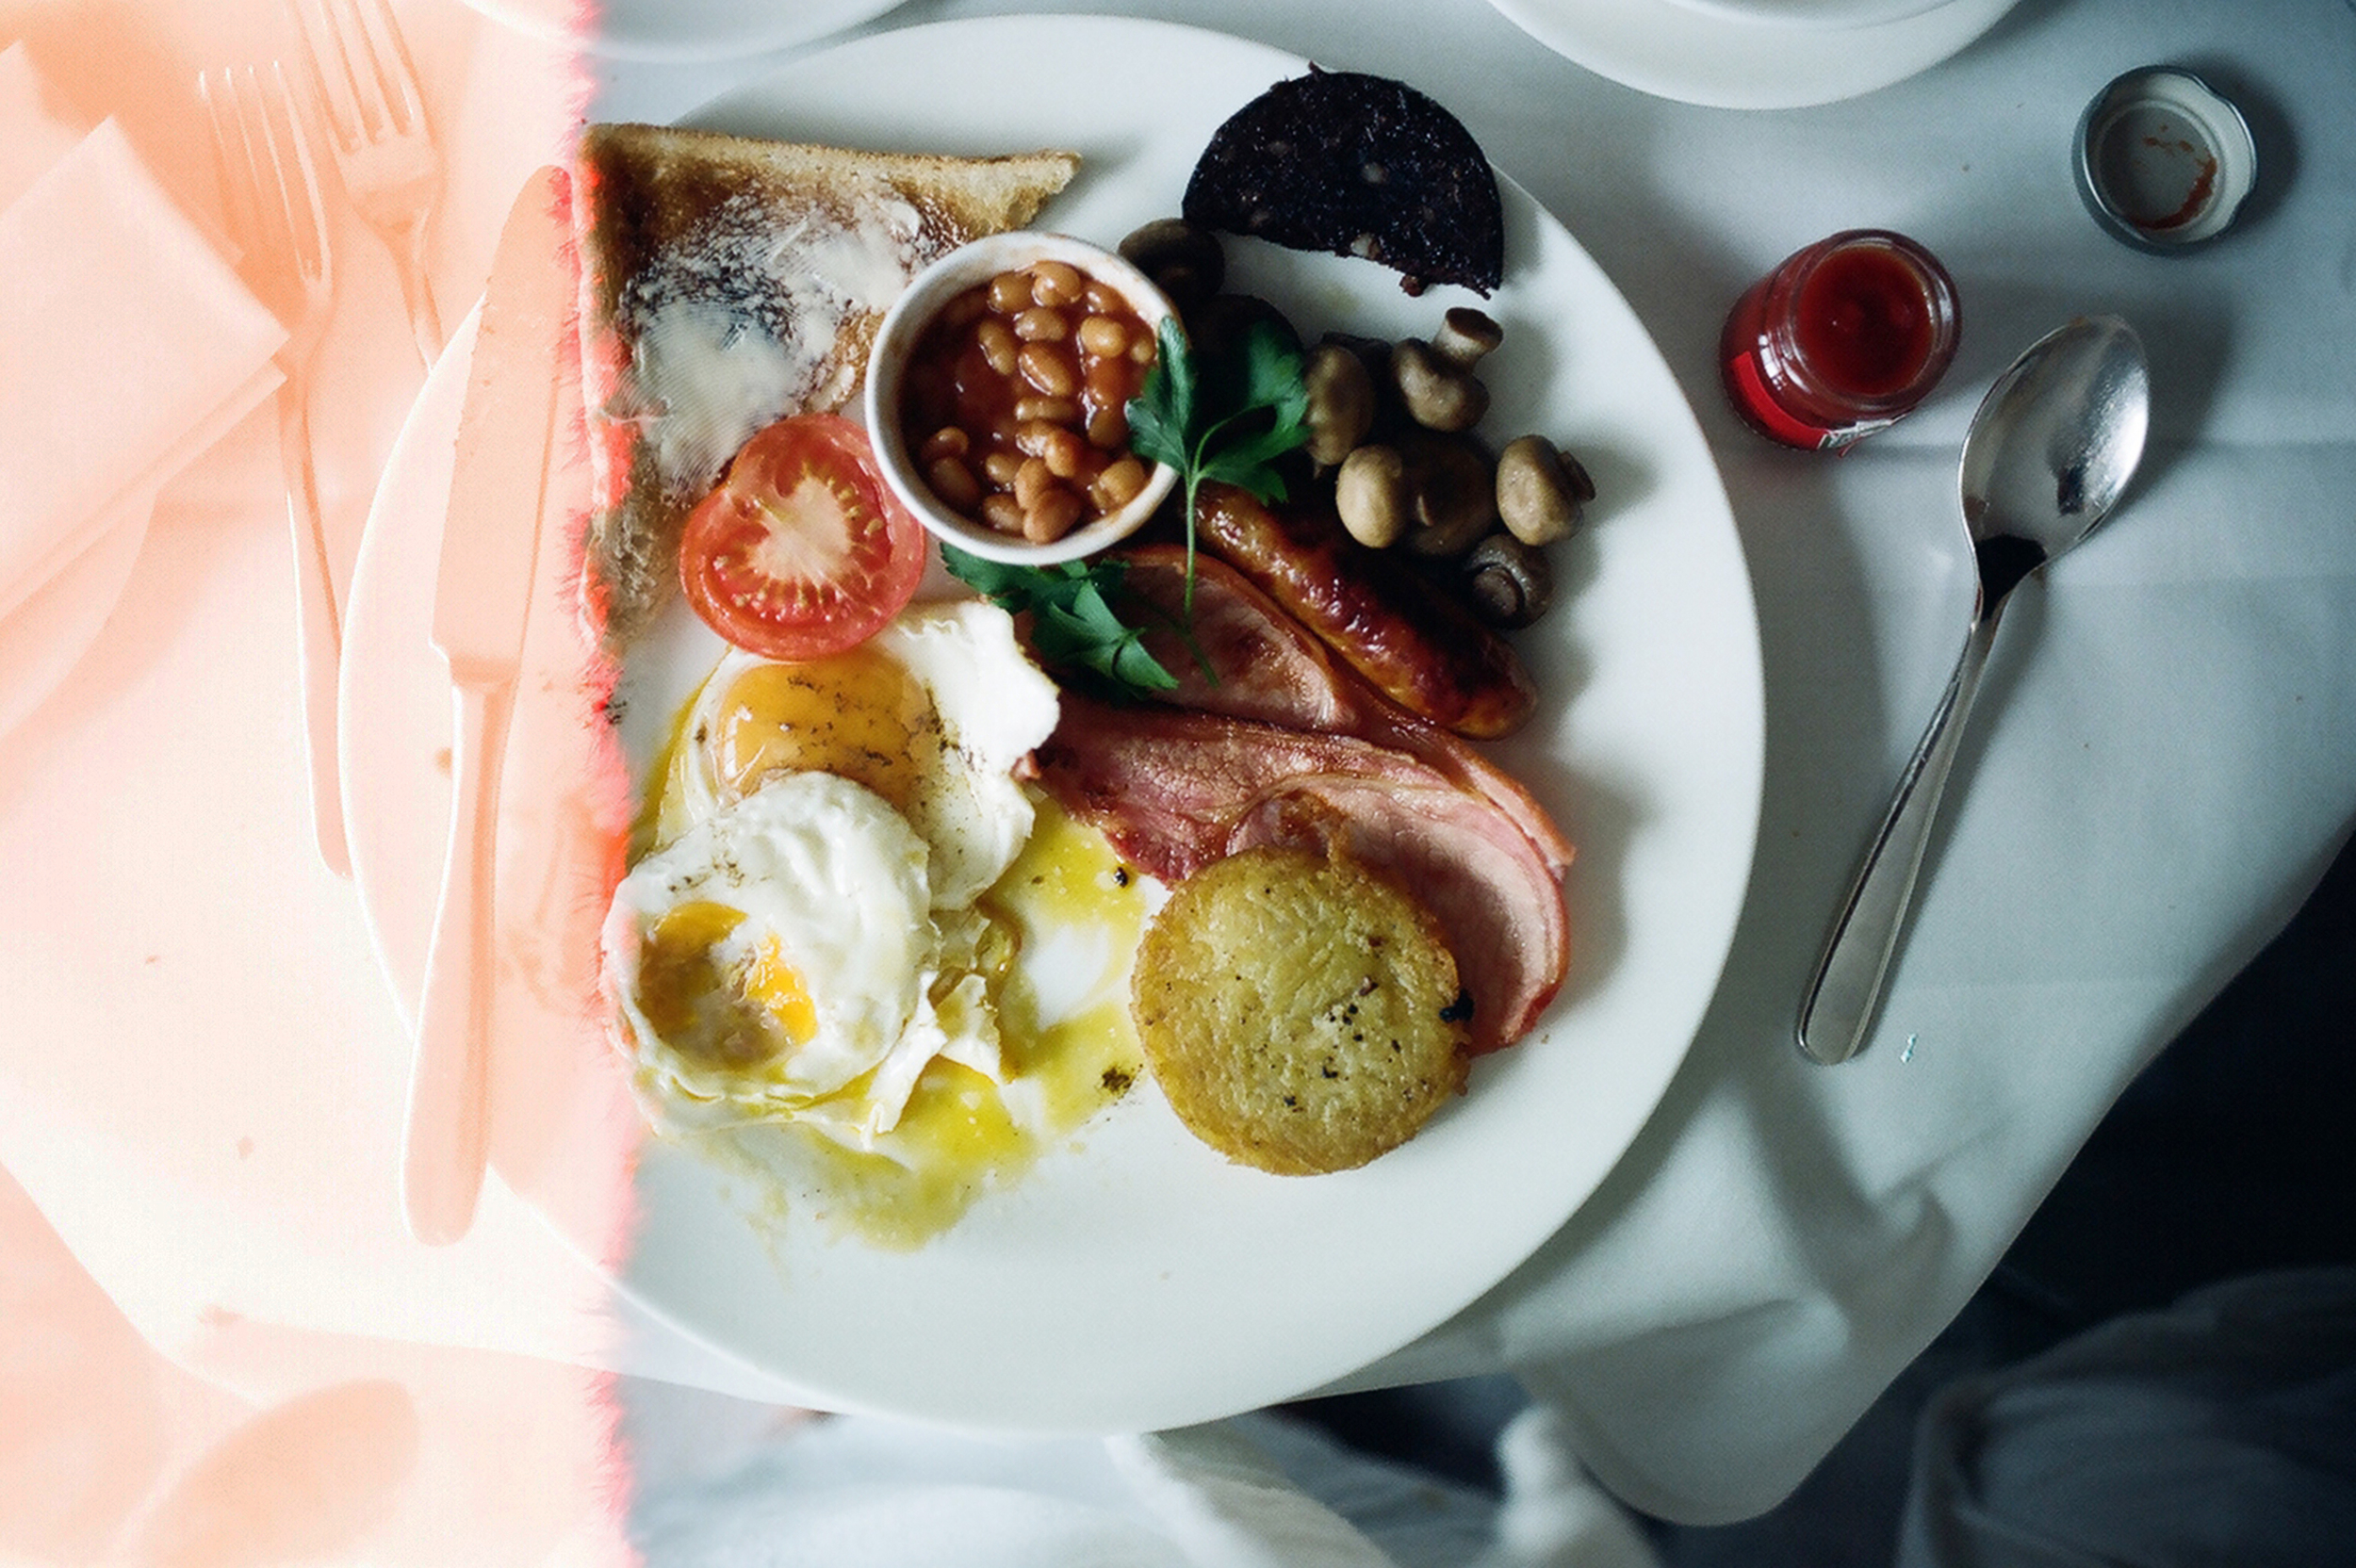 Breakfast, London, 2014